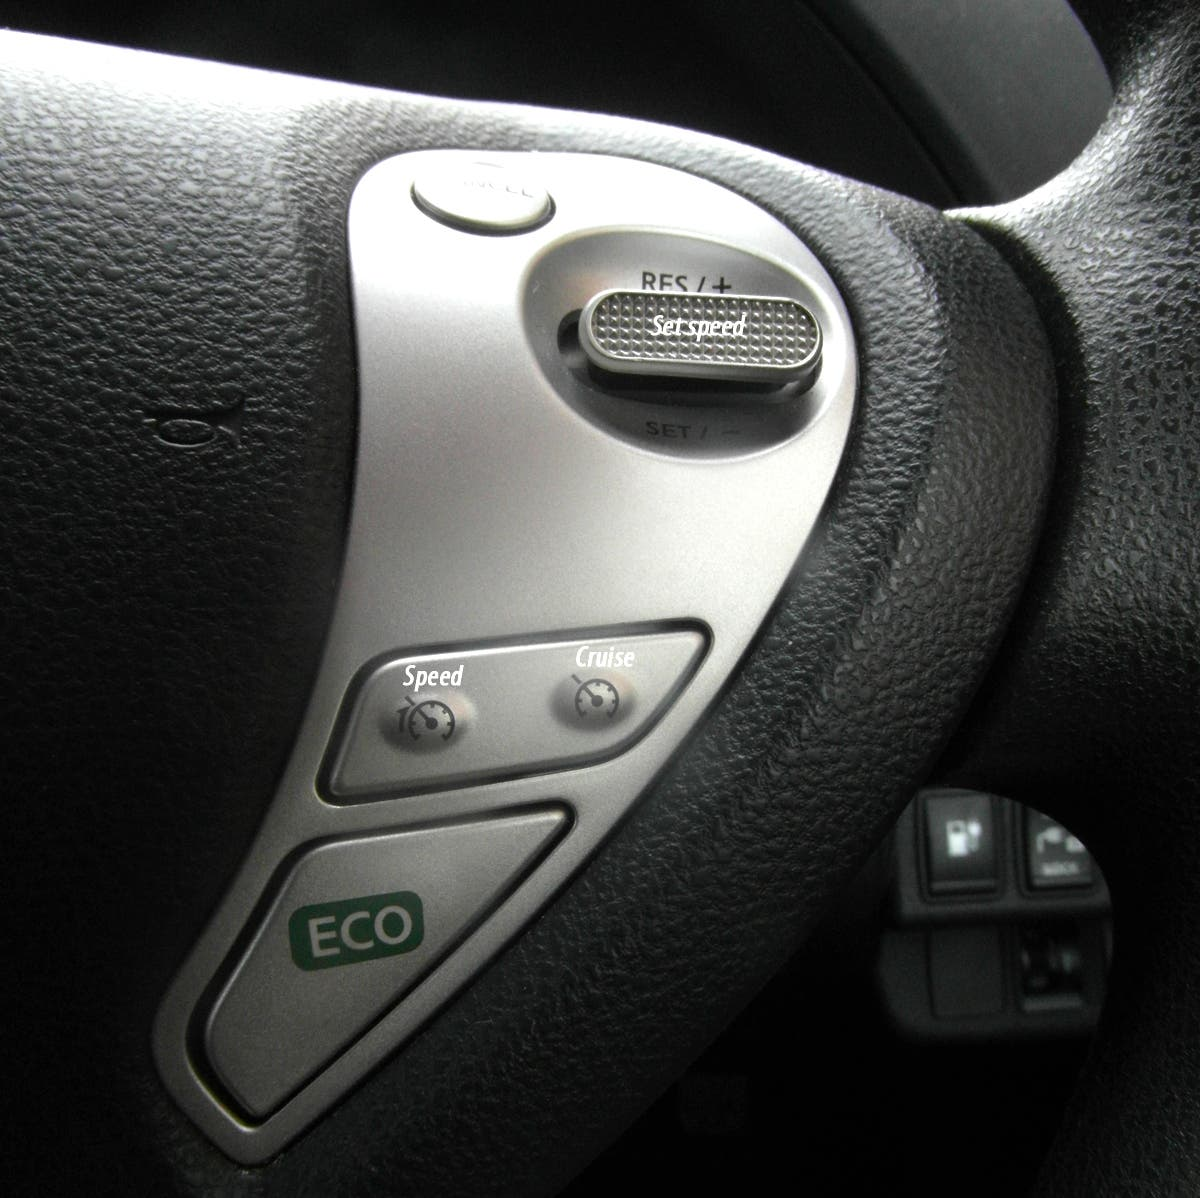 speed, and cruise controls